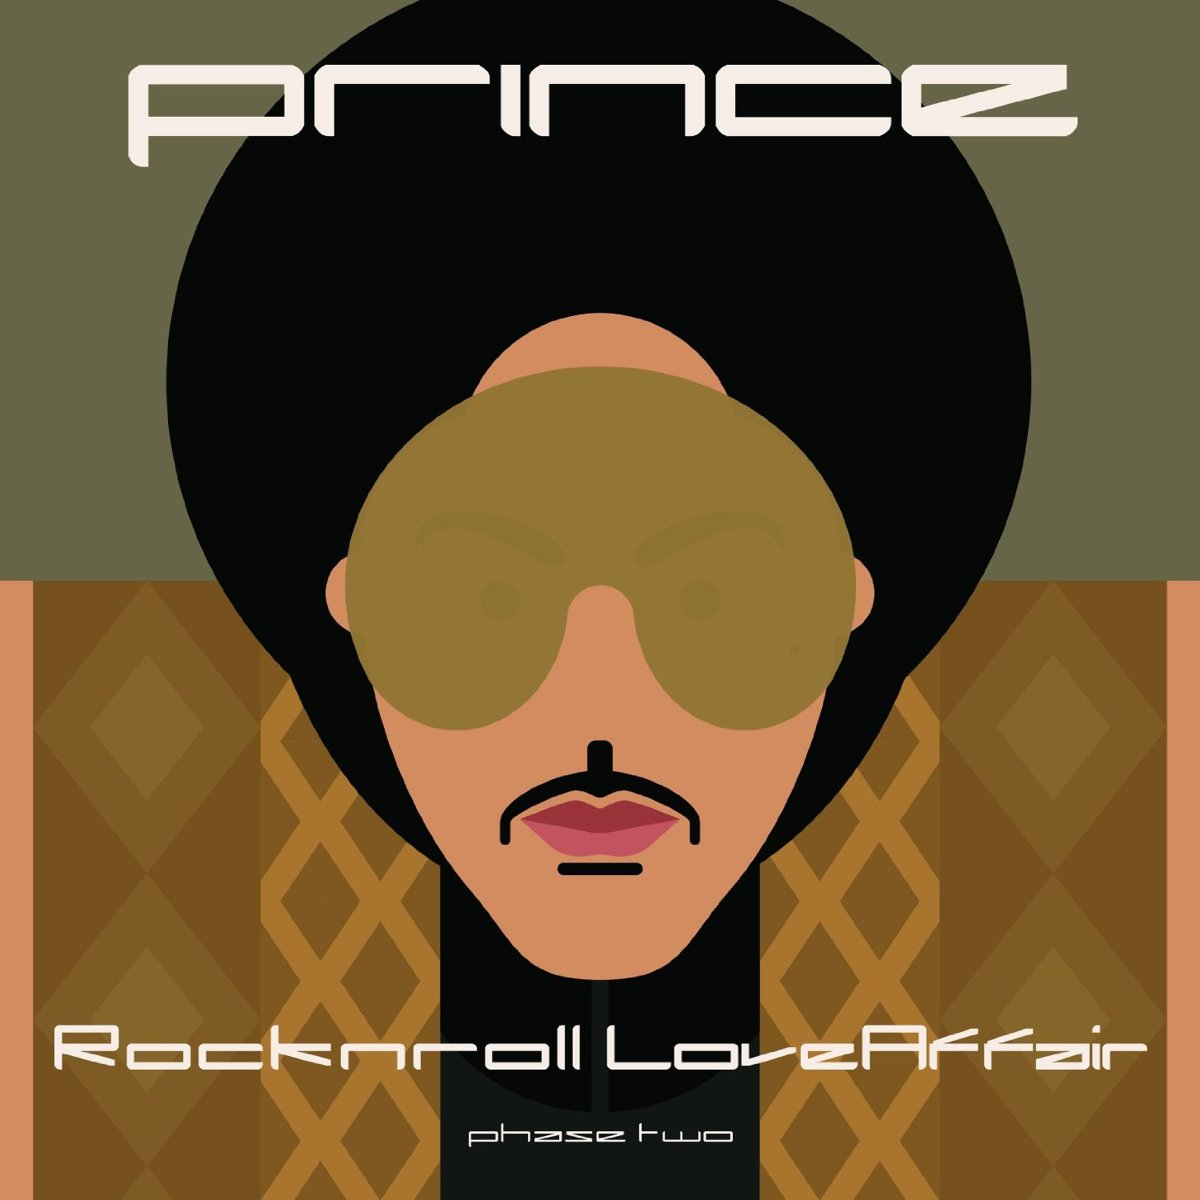 Prince - Hit 'n' Run - Phase Two | CD kopen